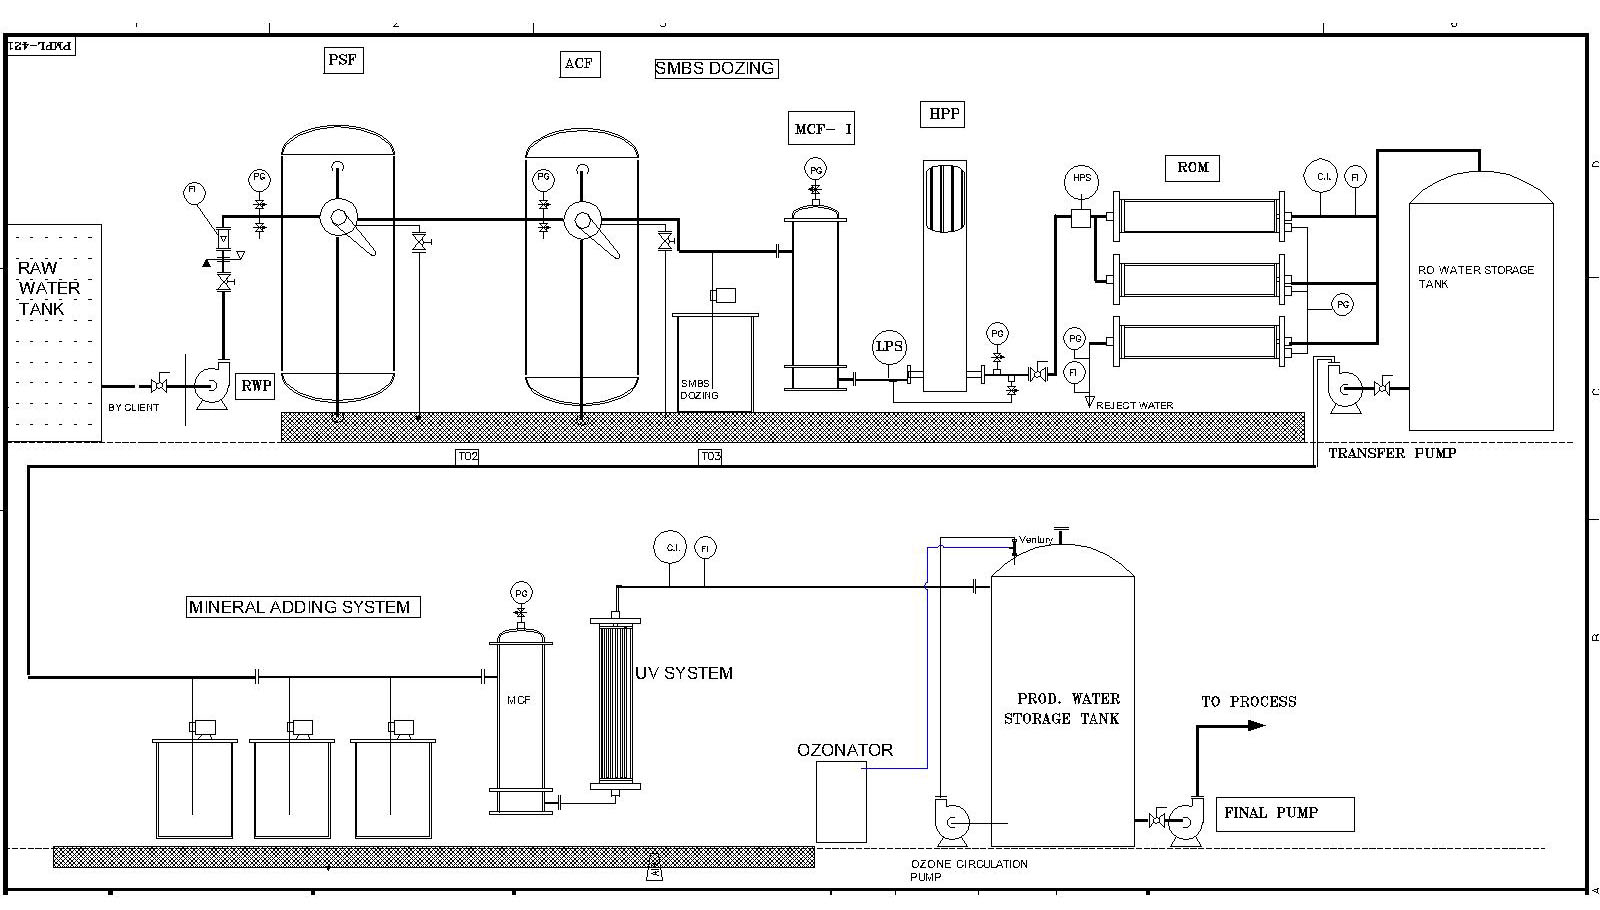 diagram of water purification process 94 jeep grand cherokee laredo radio wiring treatment plant flow